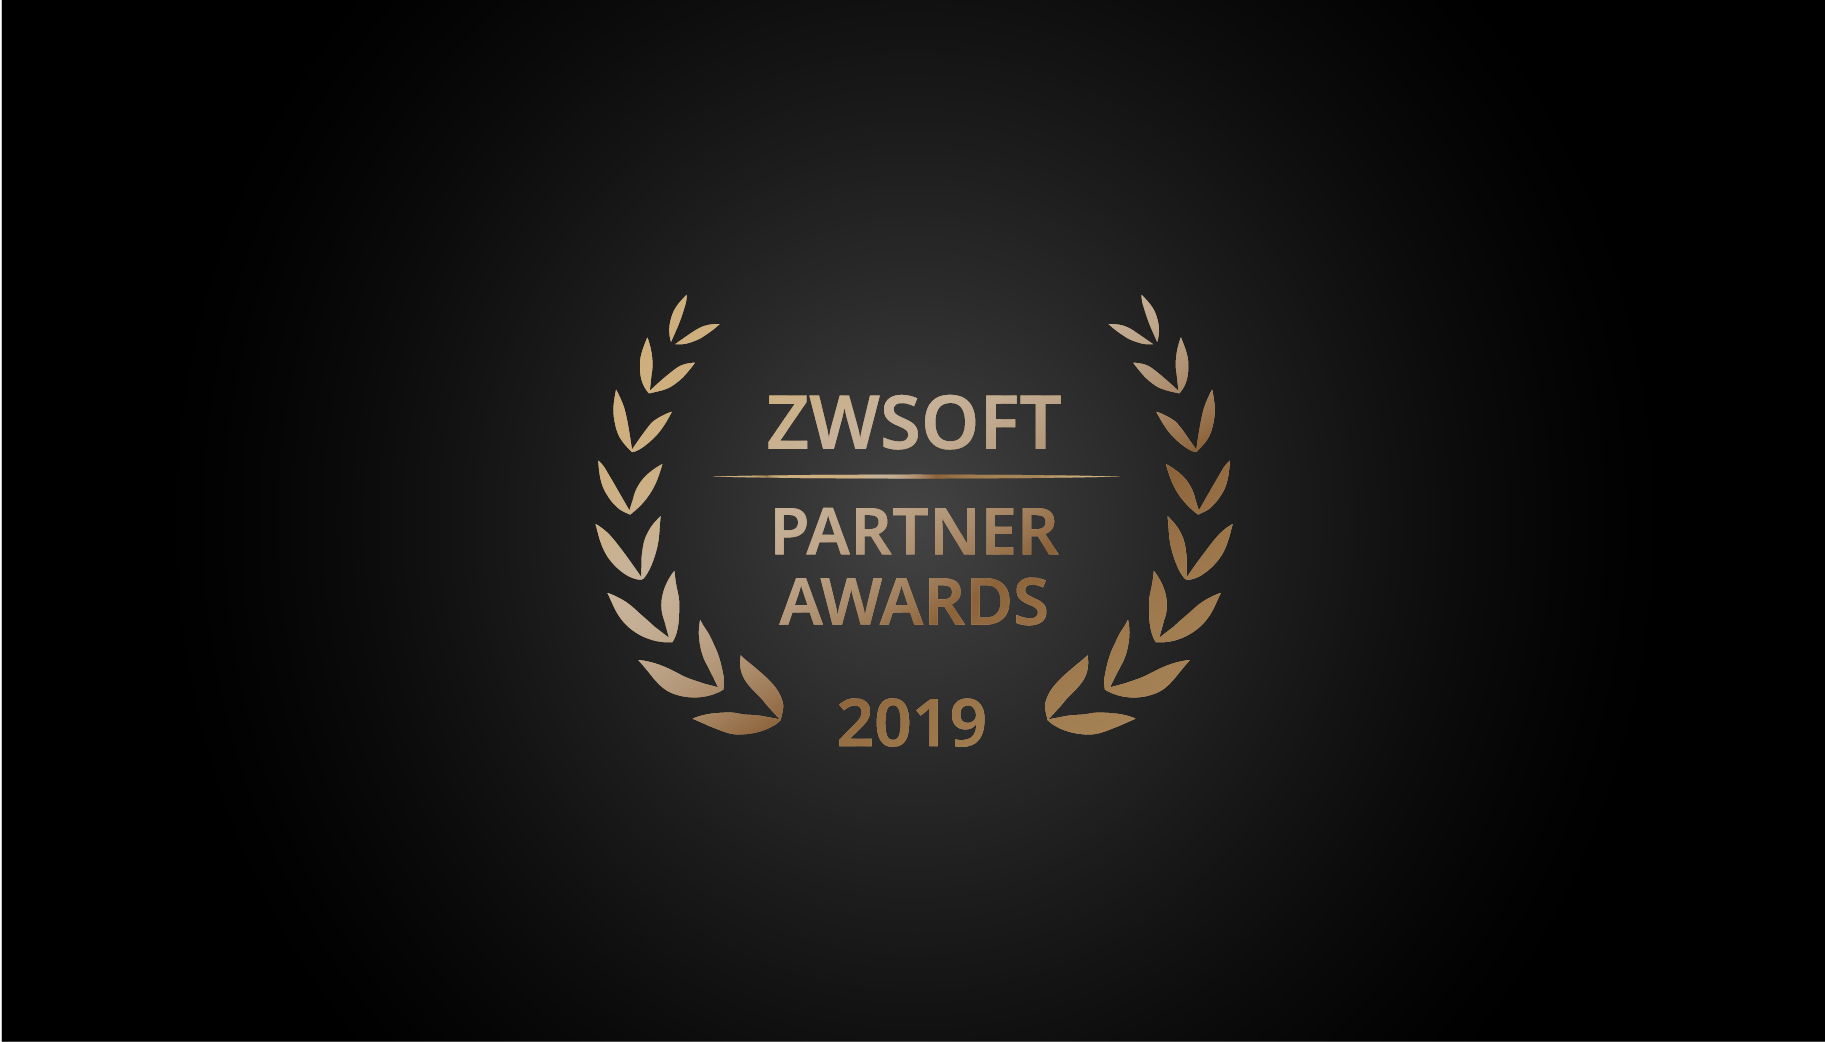 Announcement of ZWSOFT Partner Awards 2019